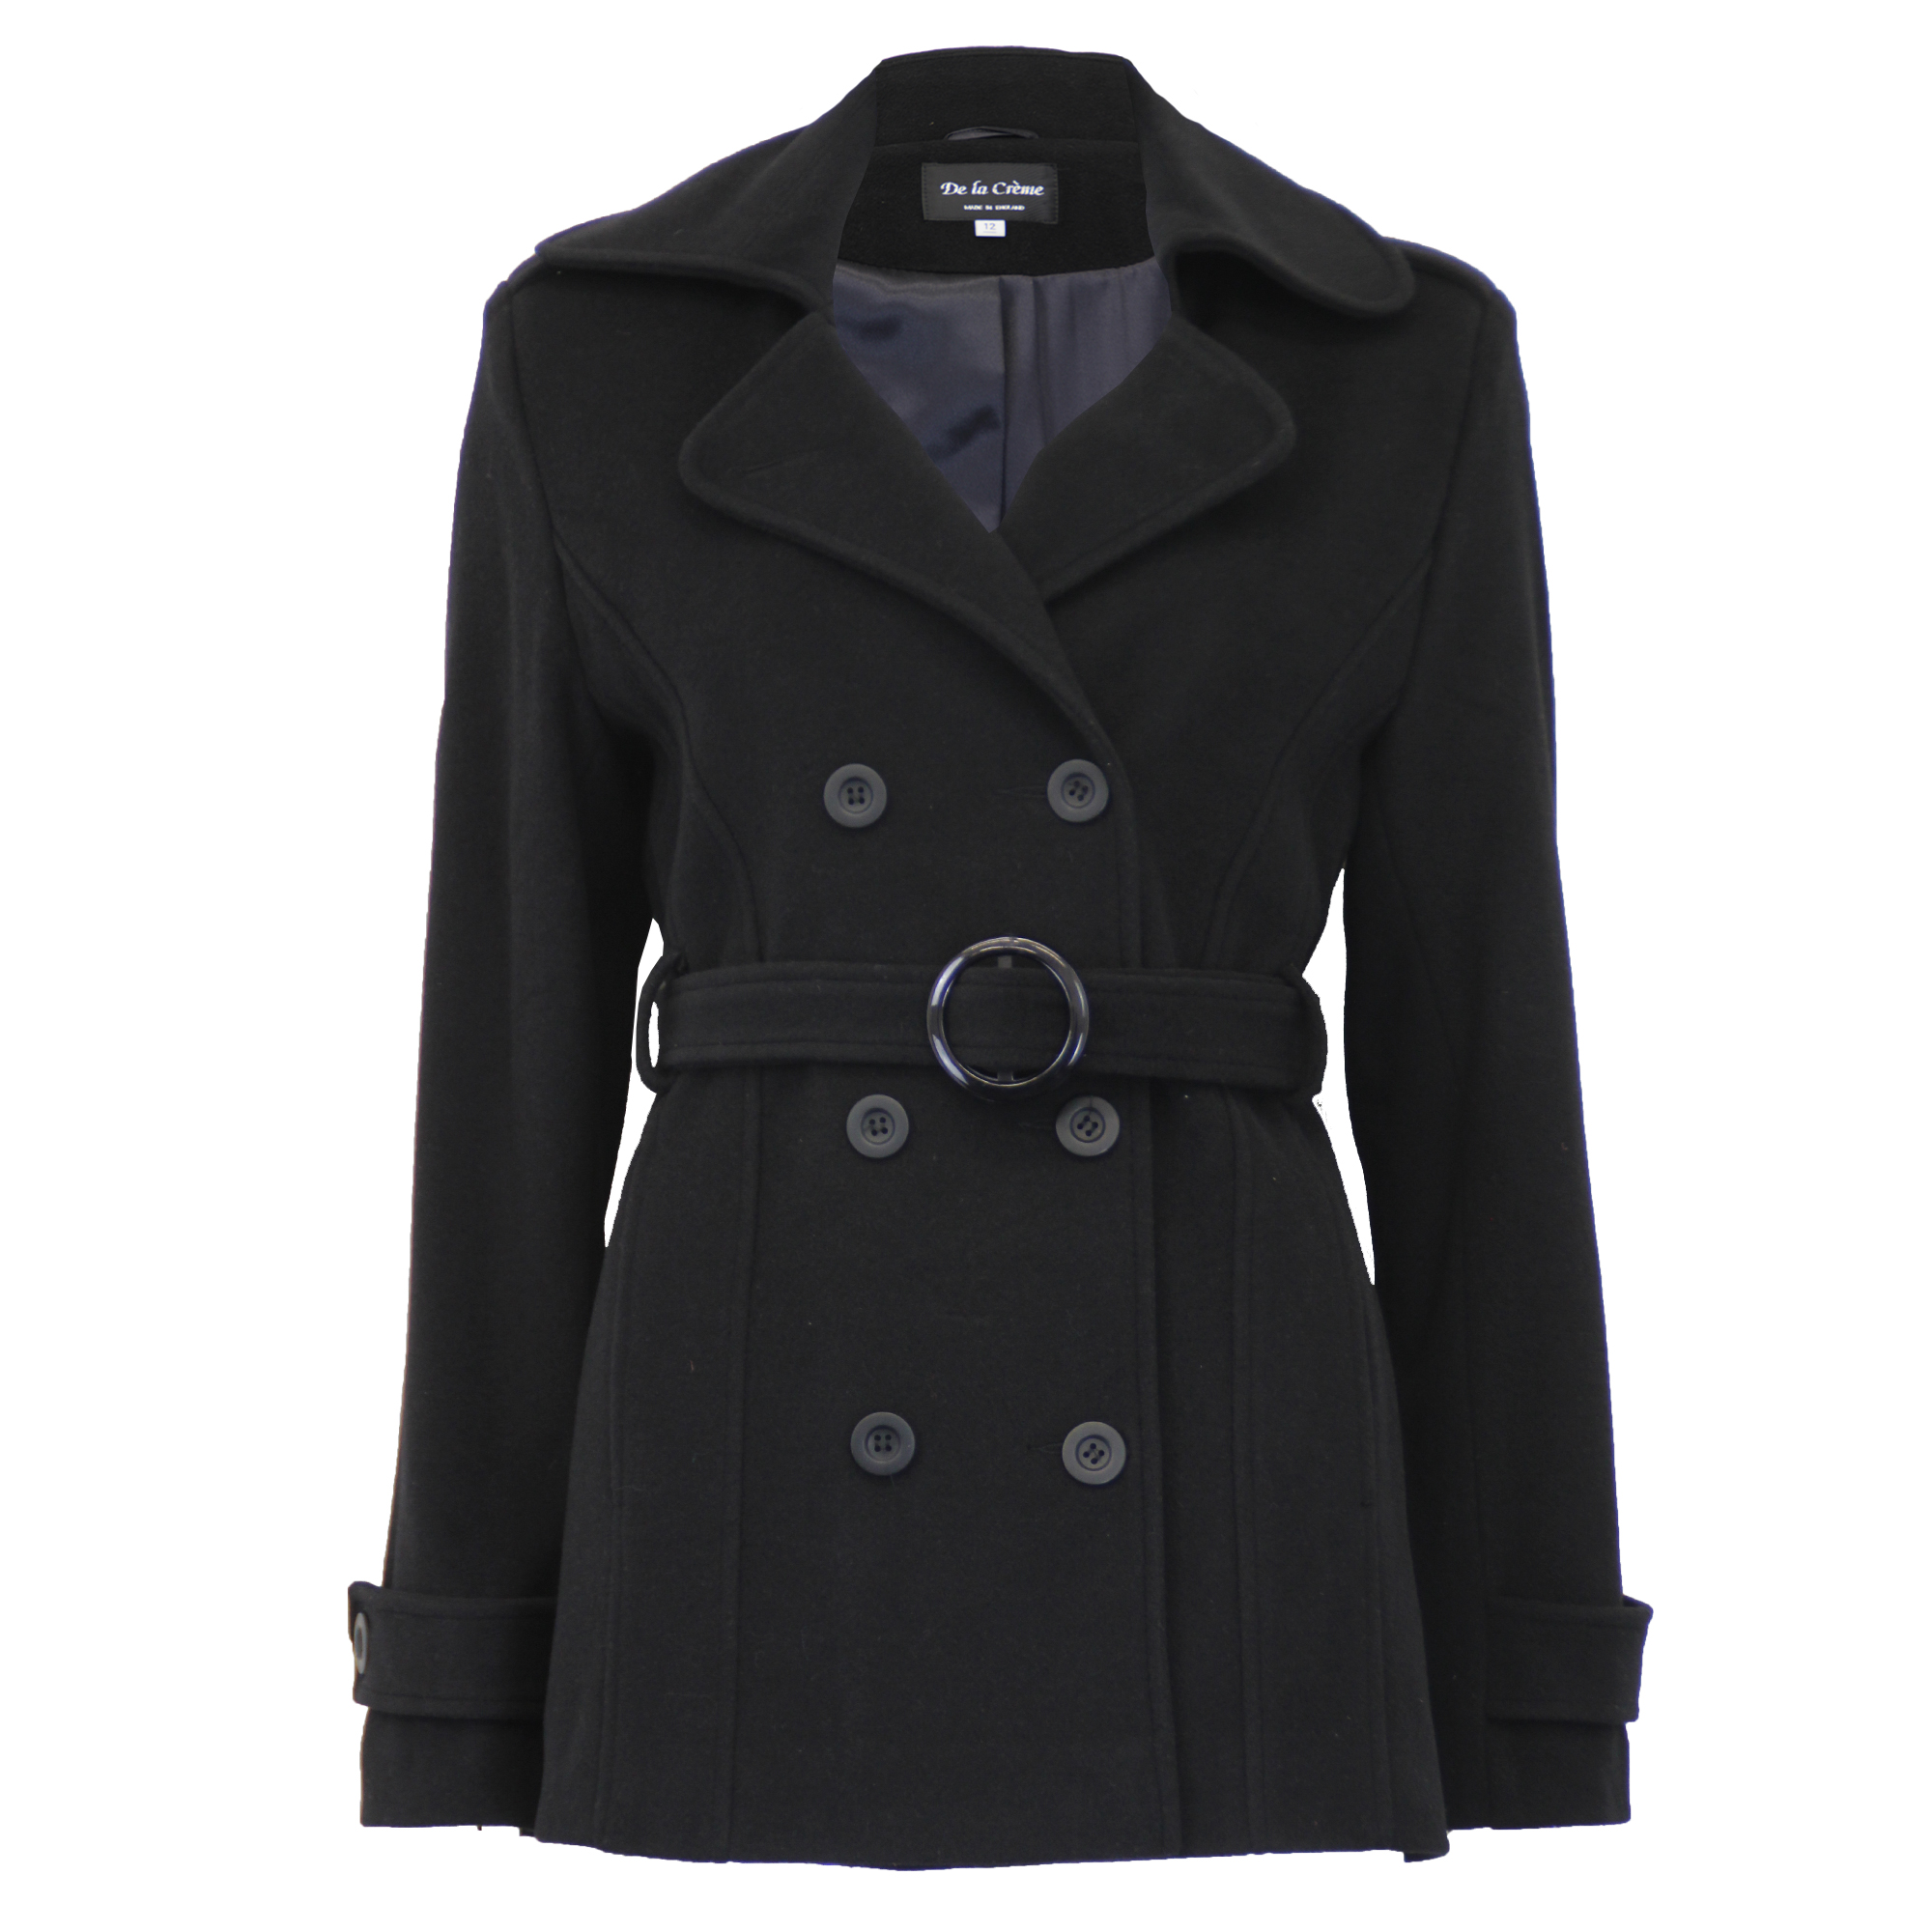 Ladies-Wool-Cashmere-Coat-Womens-Jacket-Double-Breasted-Belt-Checked-Trench-New thumbnail 2